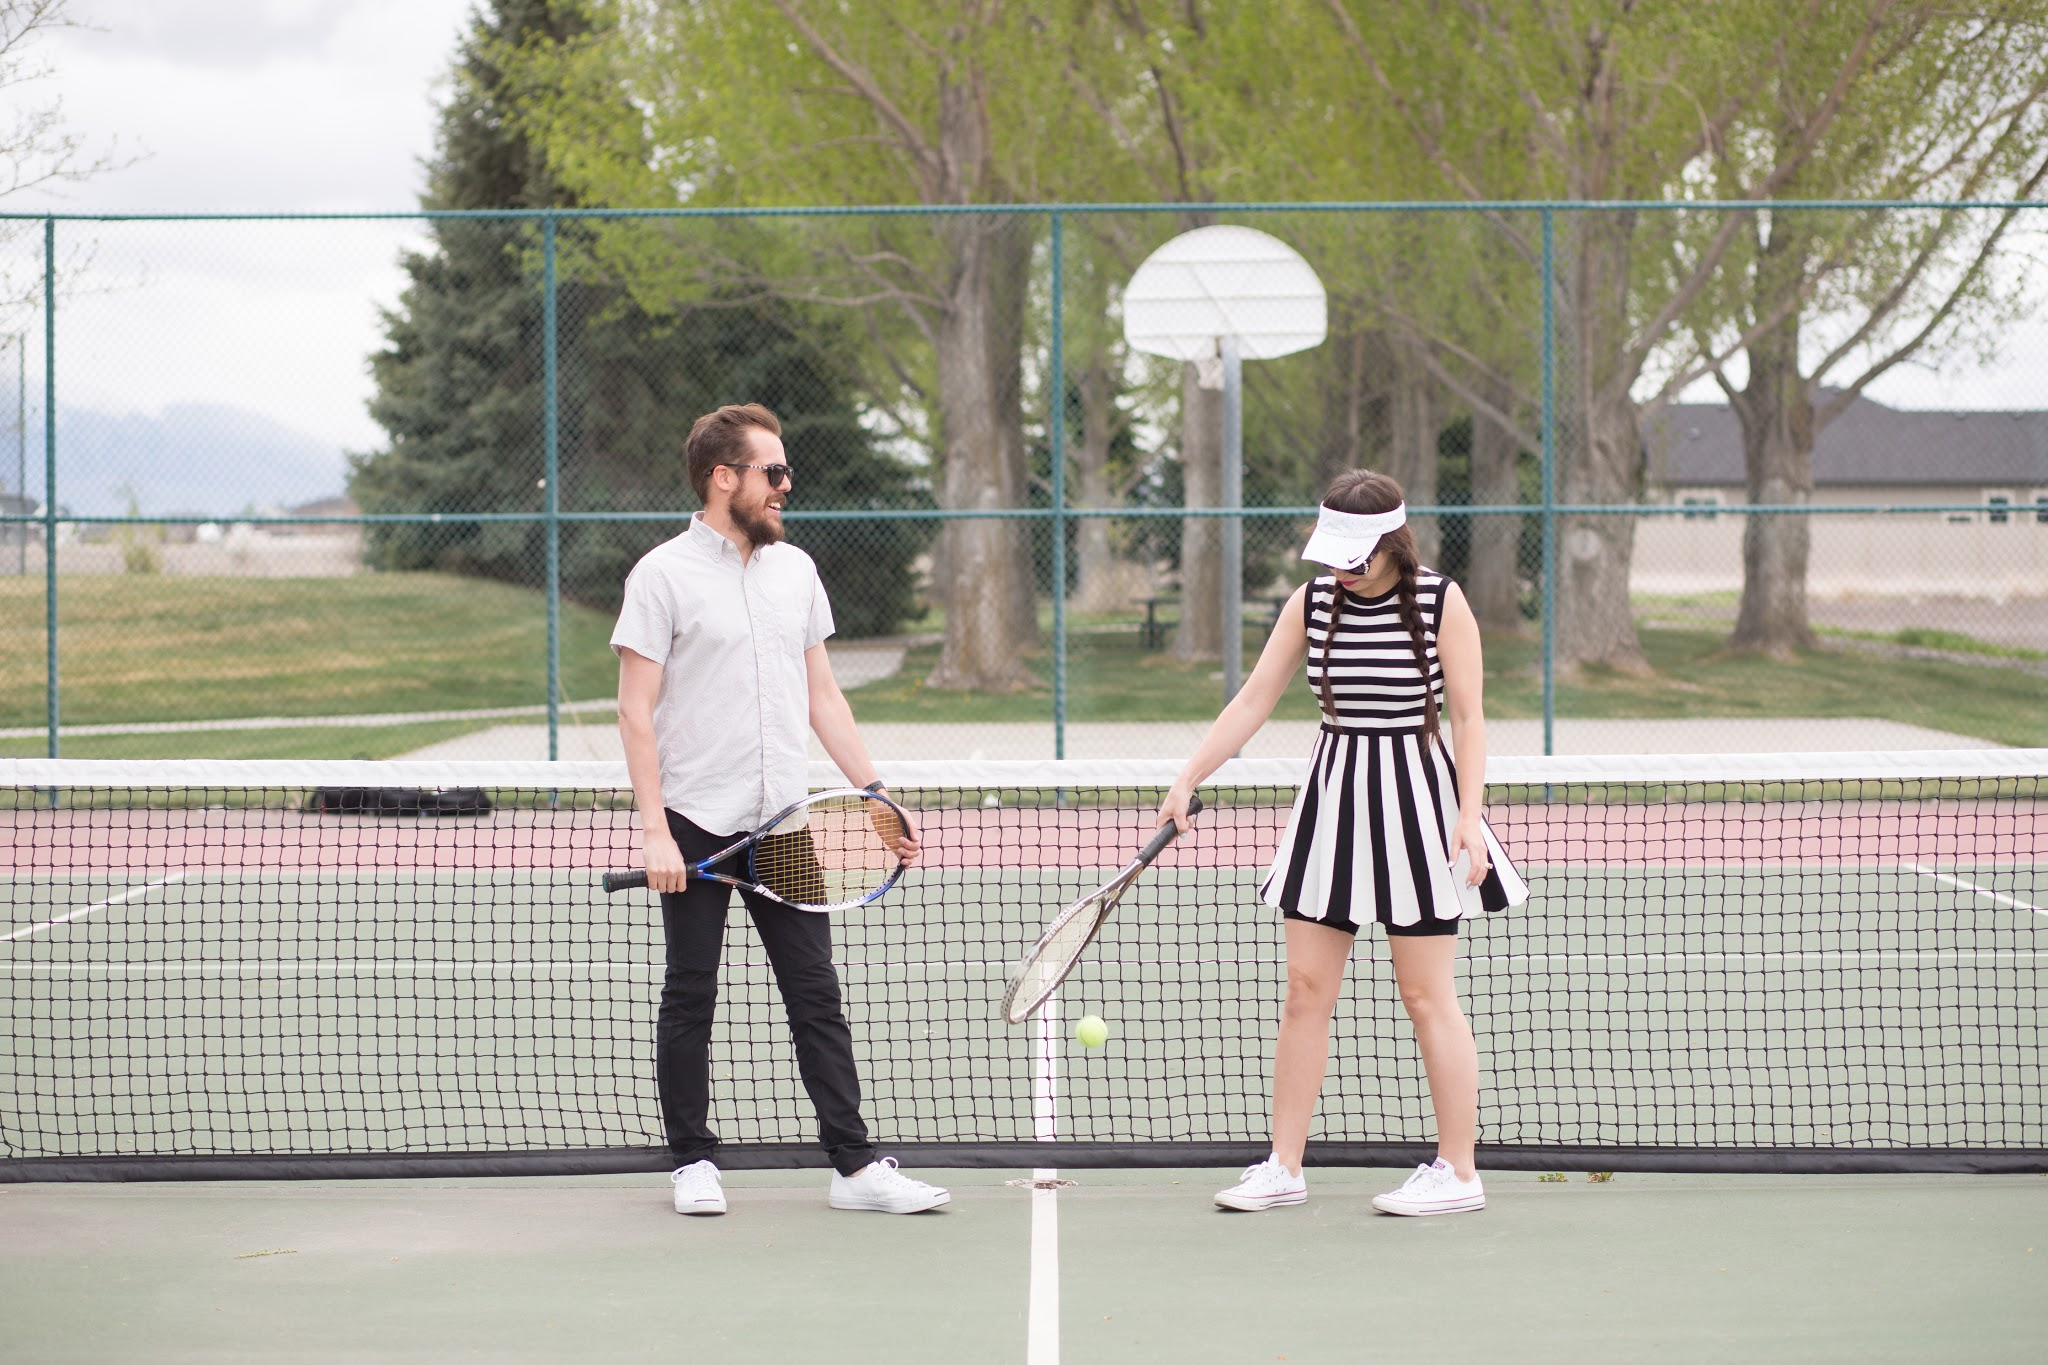 Cute Couples Playing Tennis